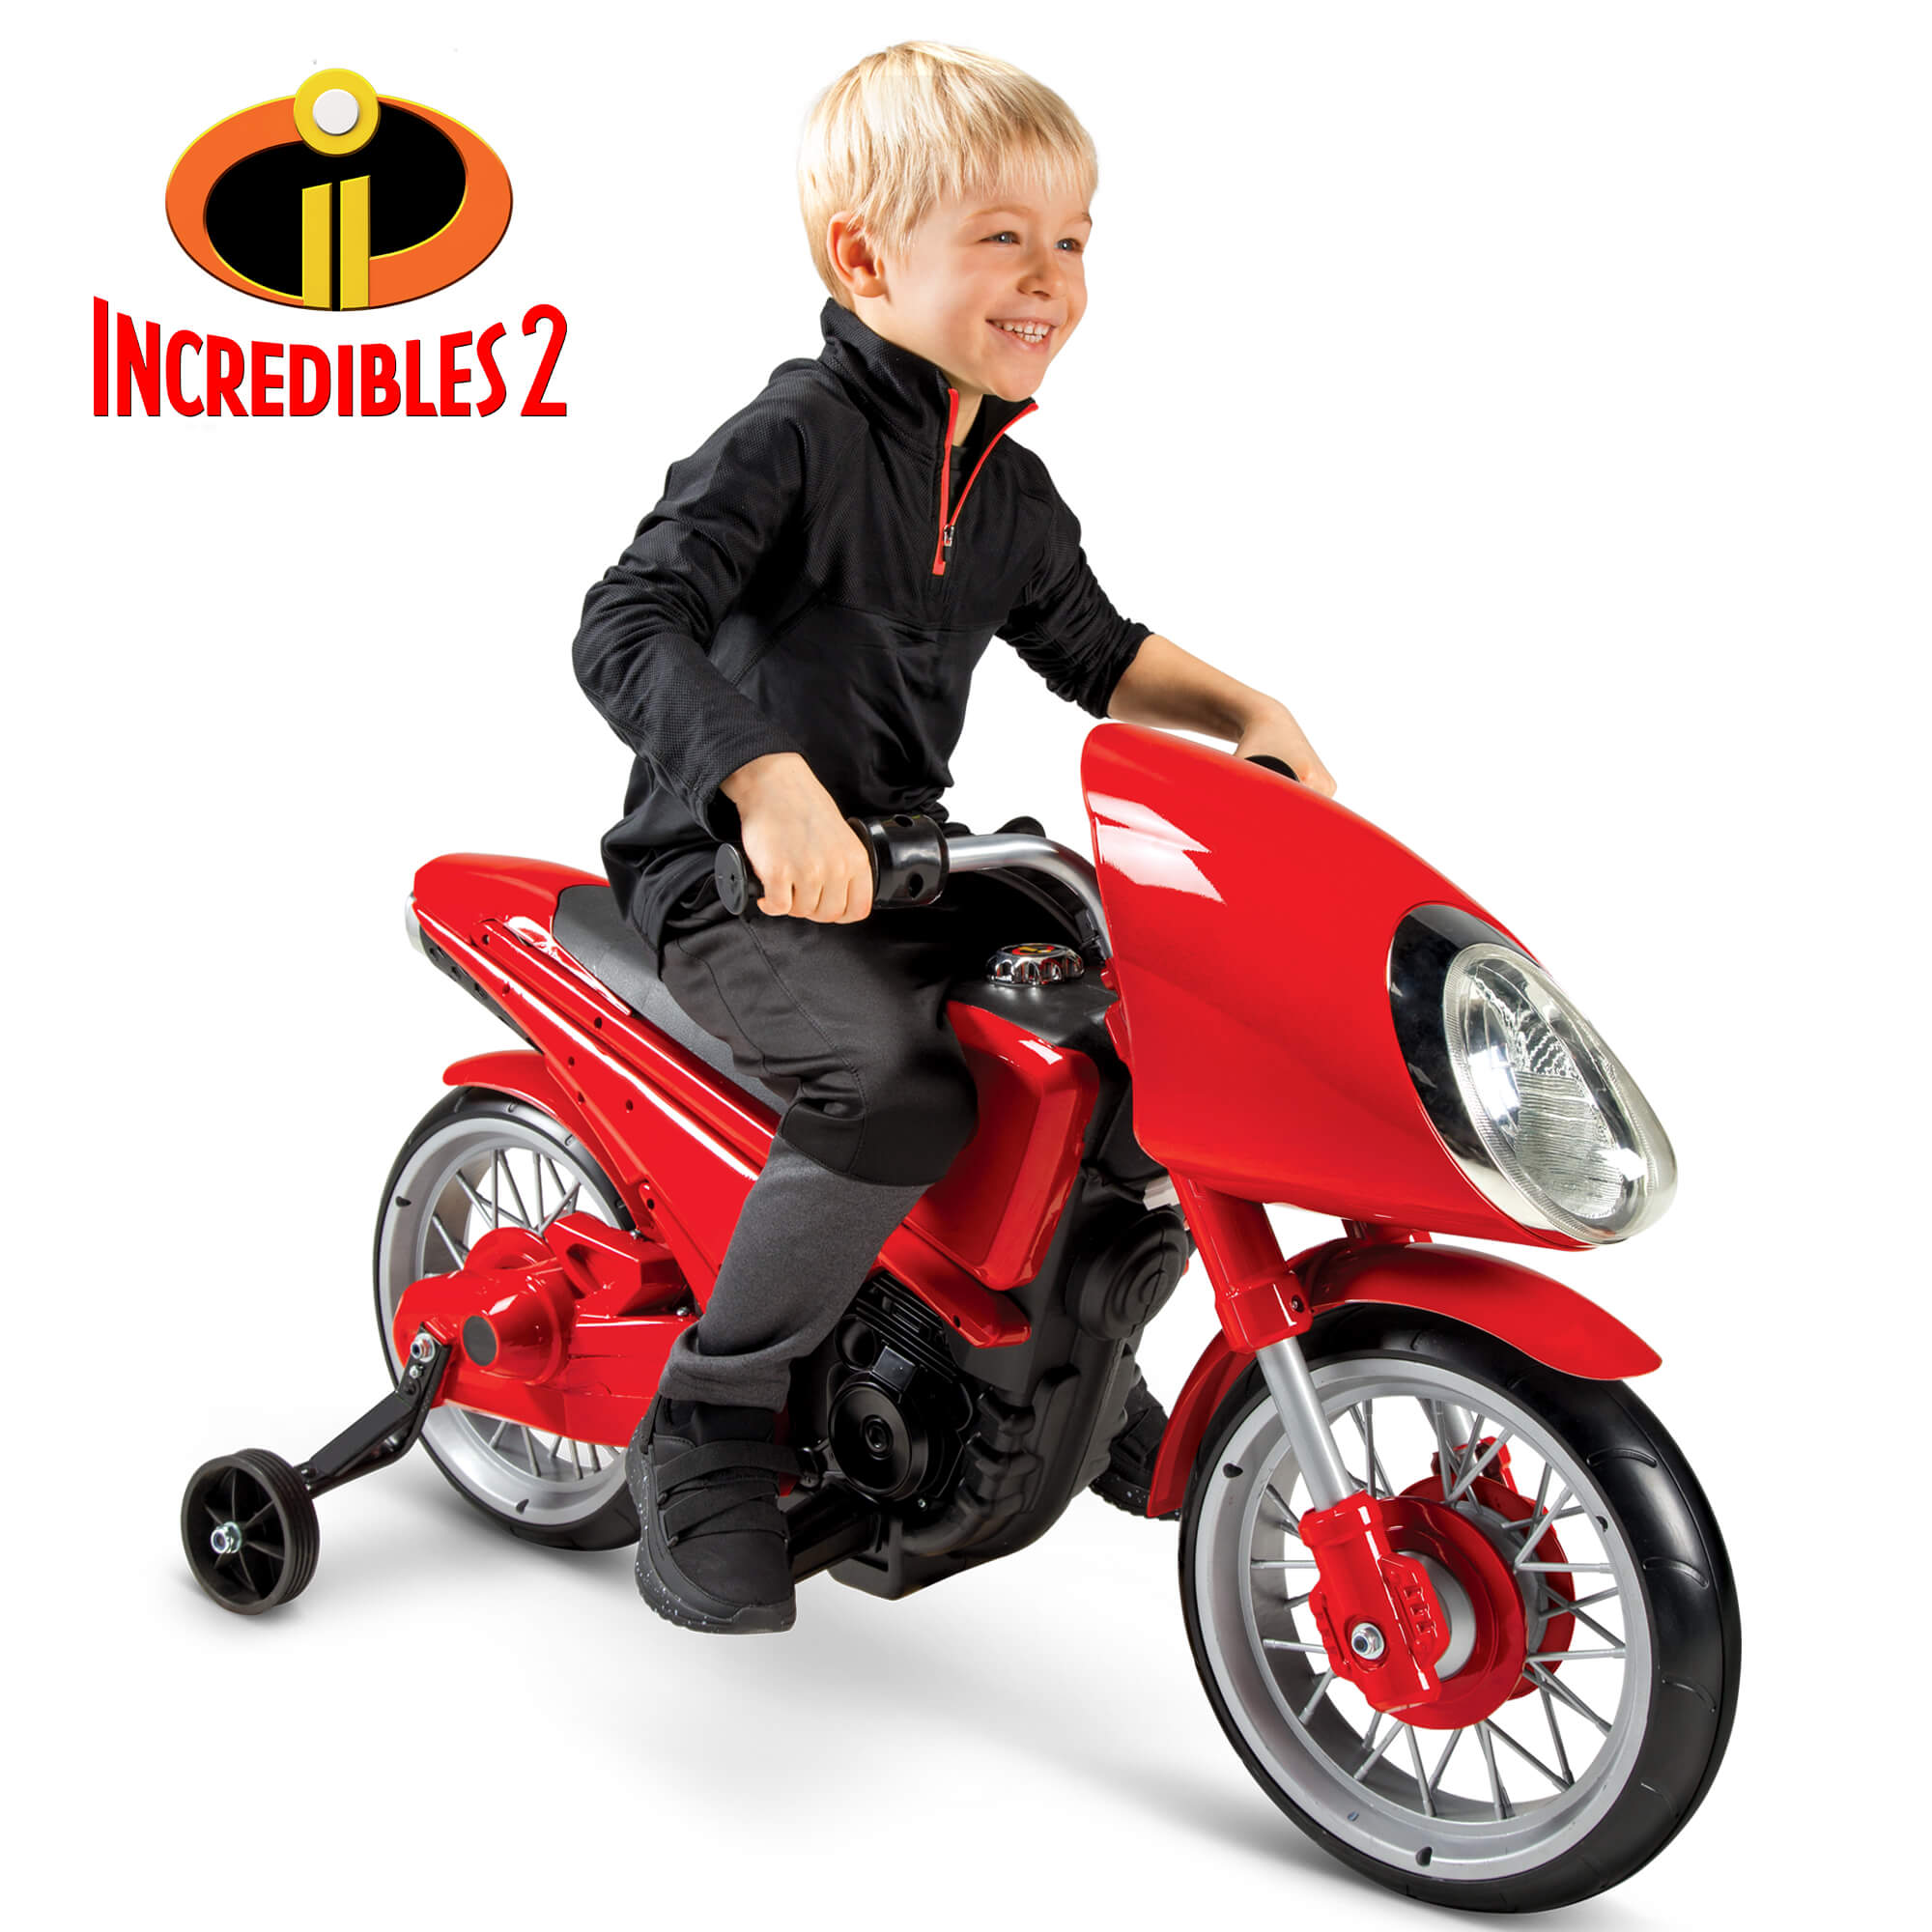 Disney / Pixar Incredibles 2 Elasticycle 6-volt Battery-Powered Ride-On by Huffy